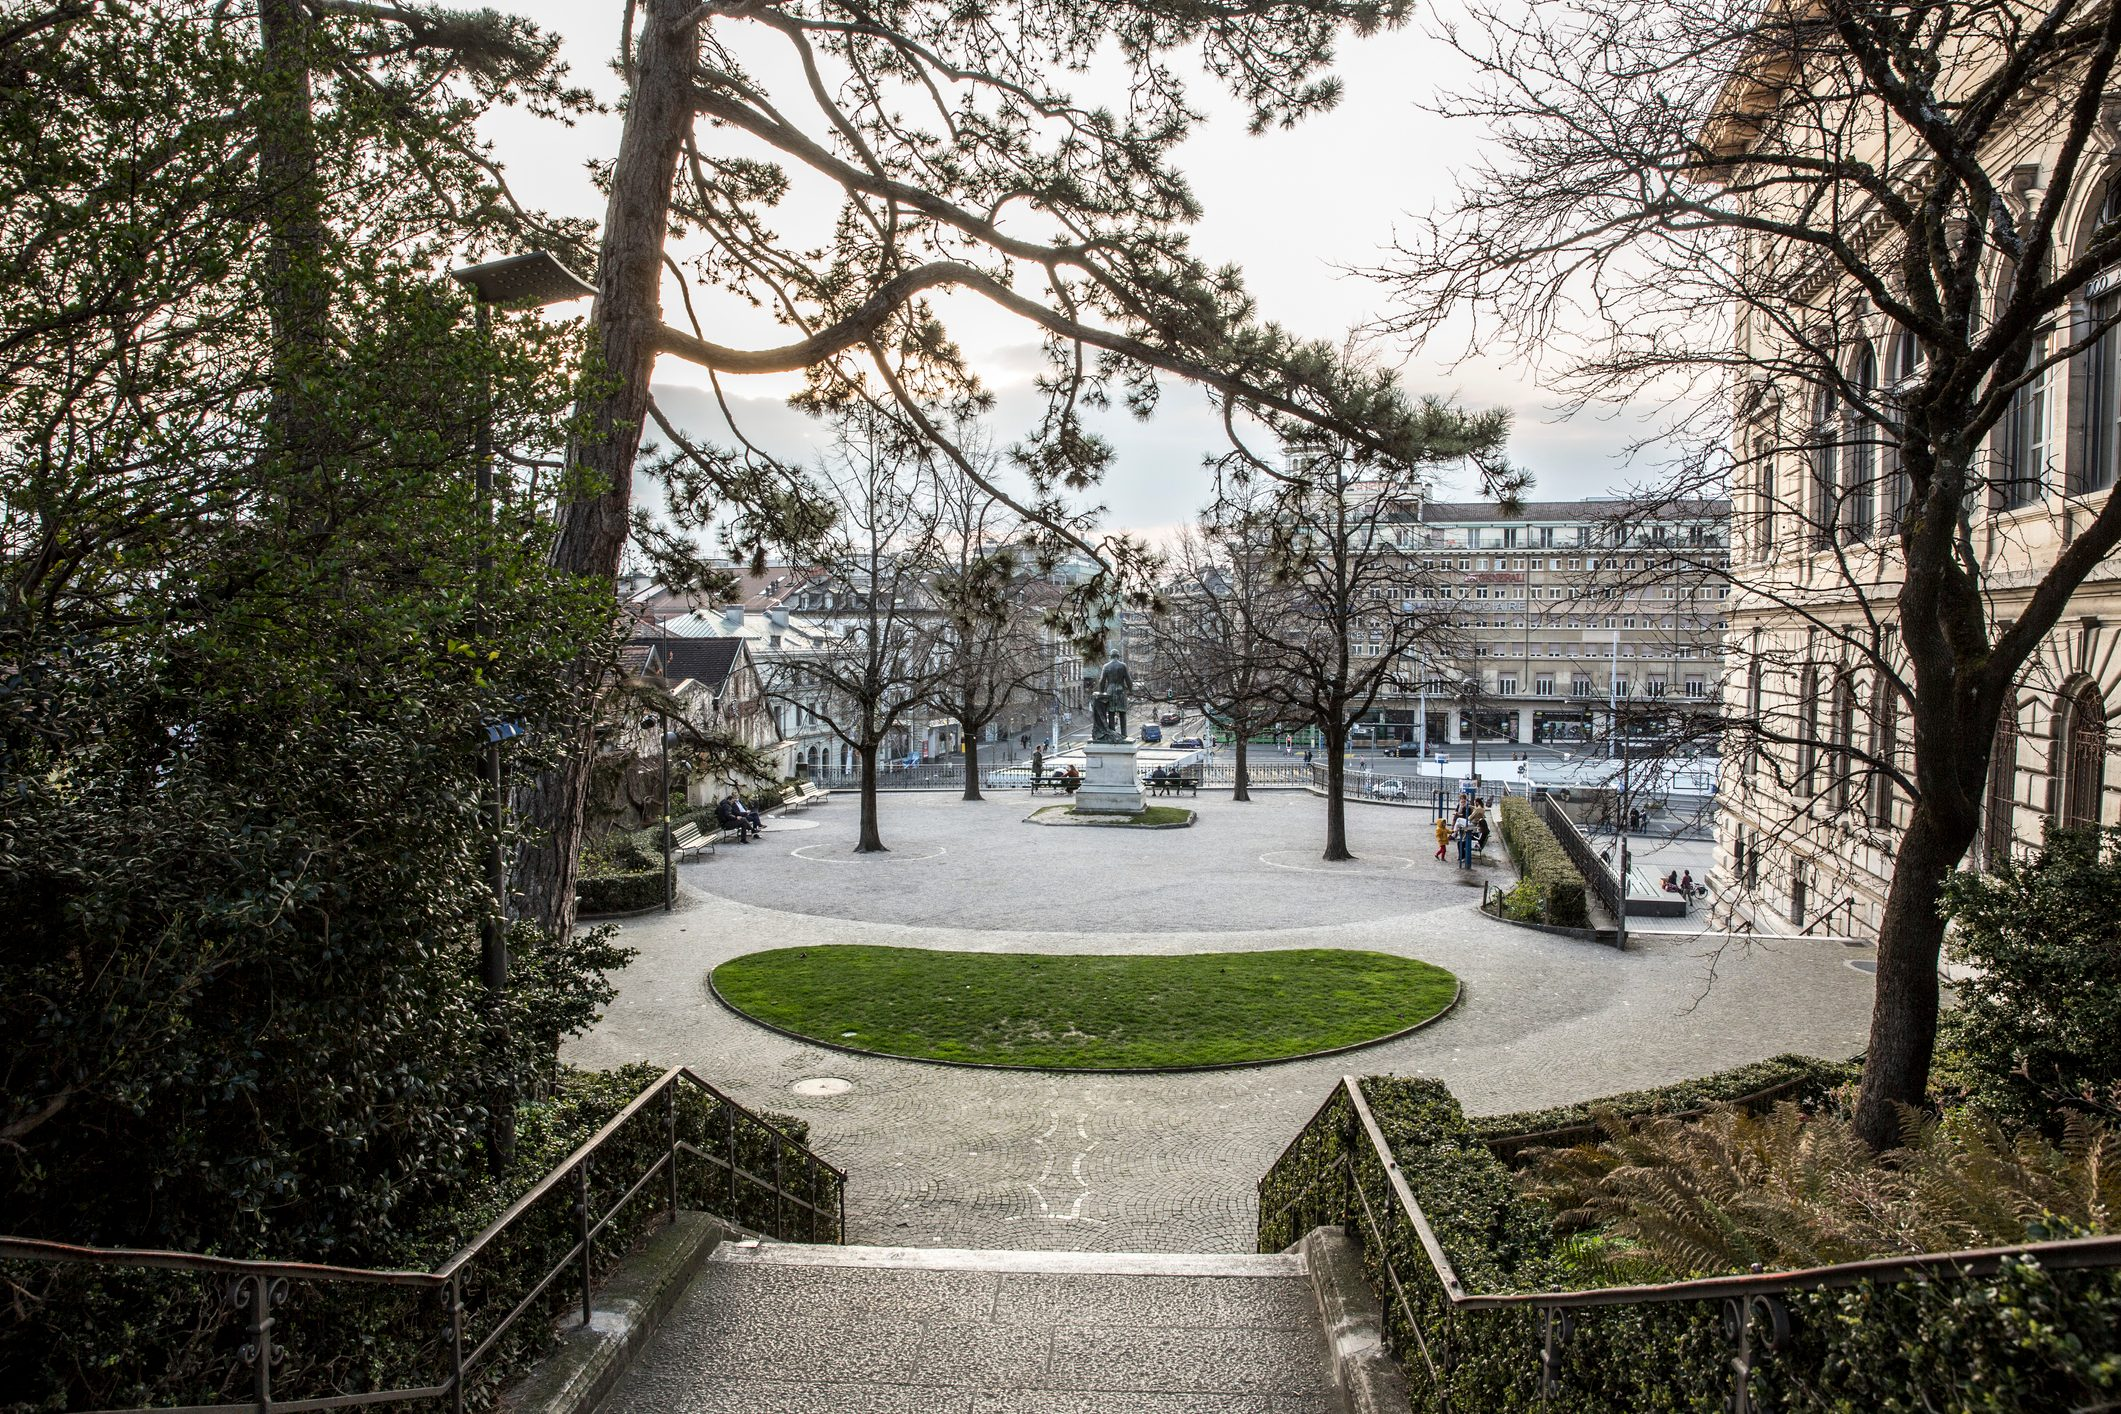 The empty parks of Lausanne during COVID-19 quarantine